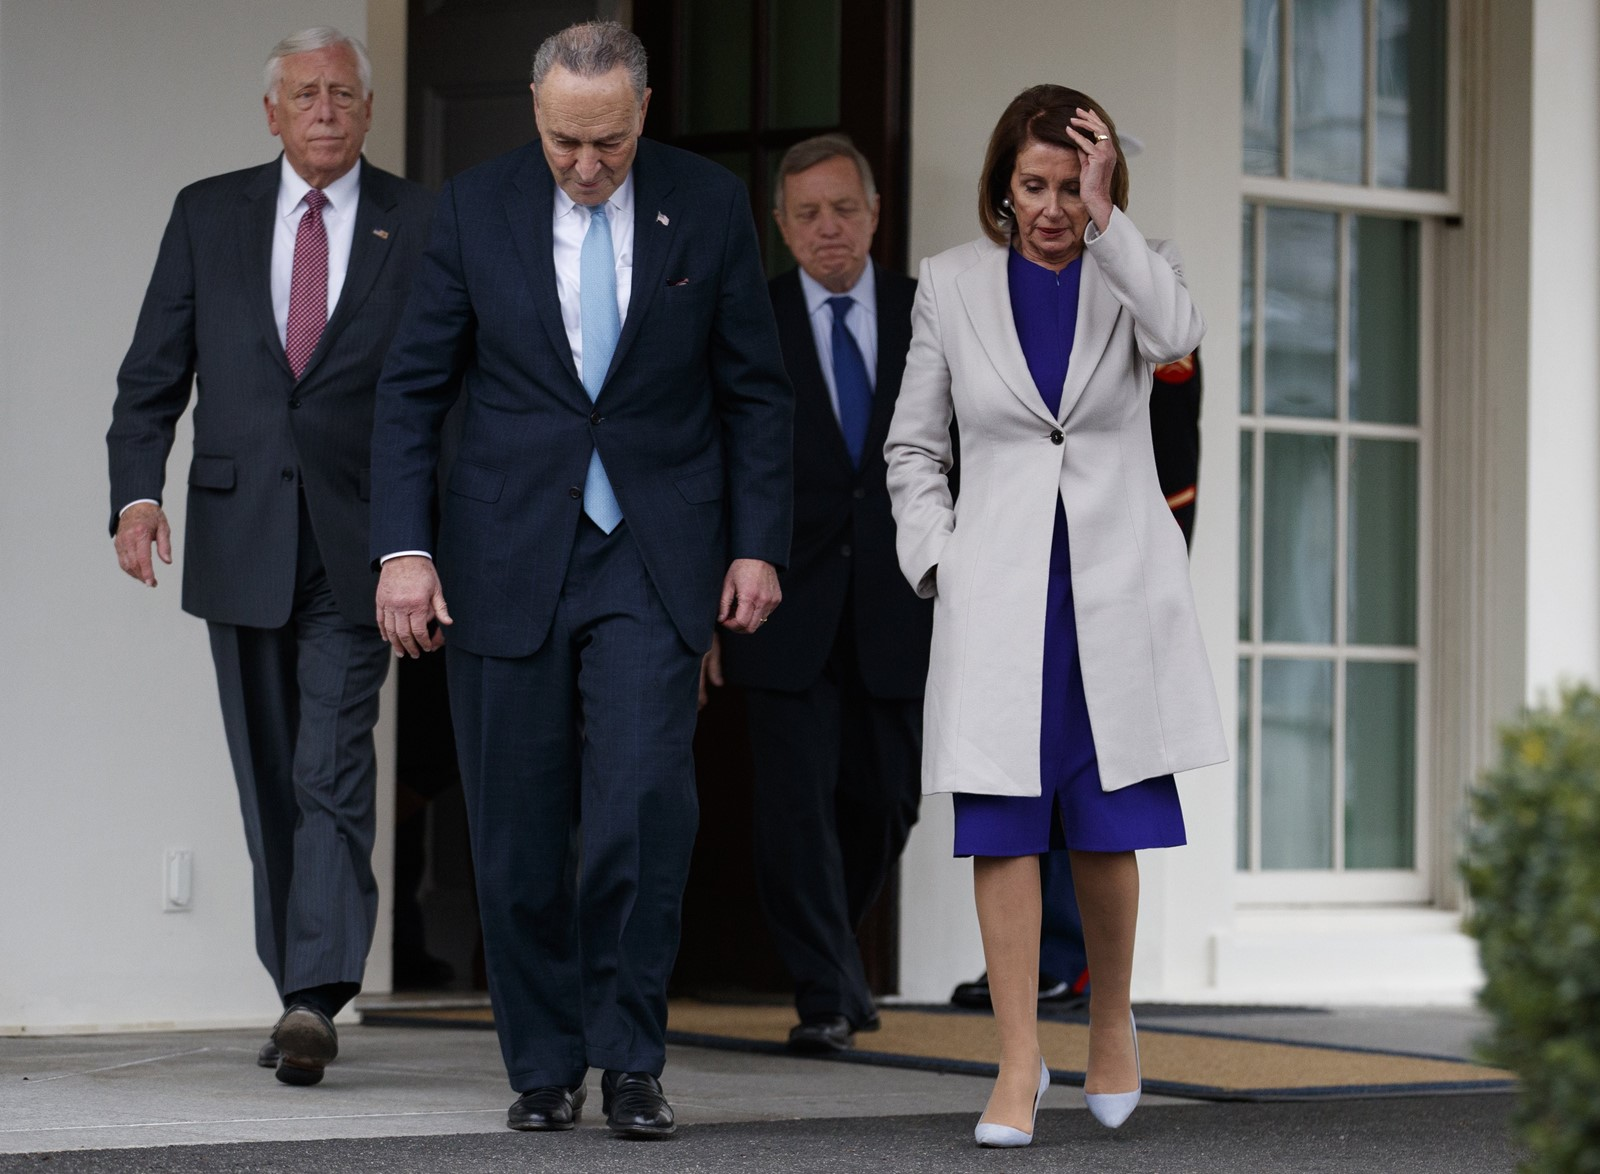 House Majority Leader Steny H. Hoyer, Senate Minority Leader Charles E. Schumer, Senate Minority Whip Richard J. Durbin and House Speaker Nancy Pelosi, from left, had an unsuccessful meeting with Trump. — Photograph: Evan Vucci/Associated Press.